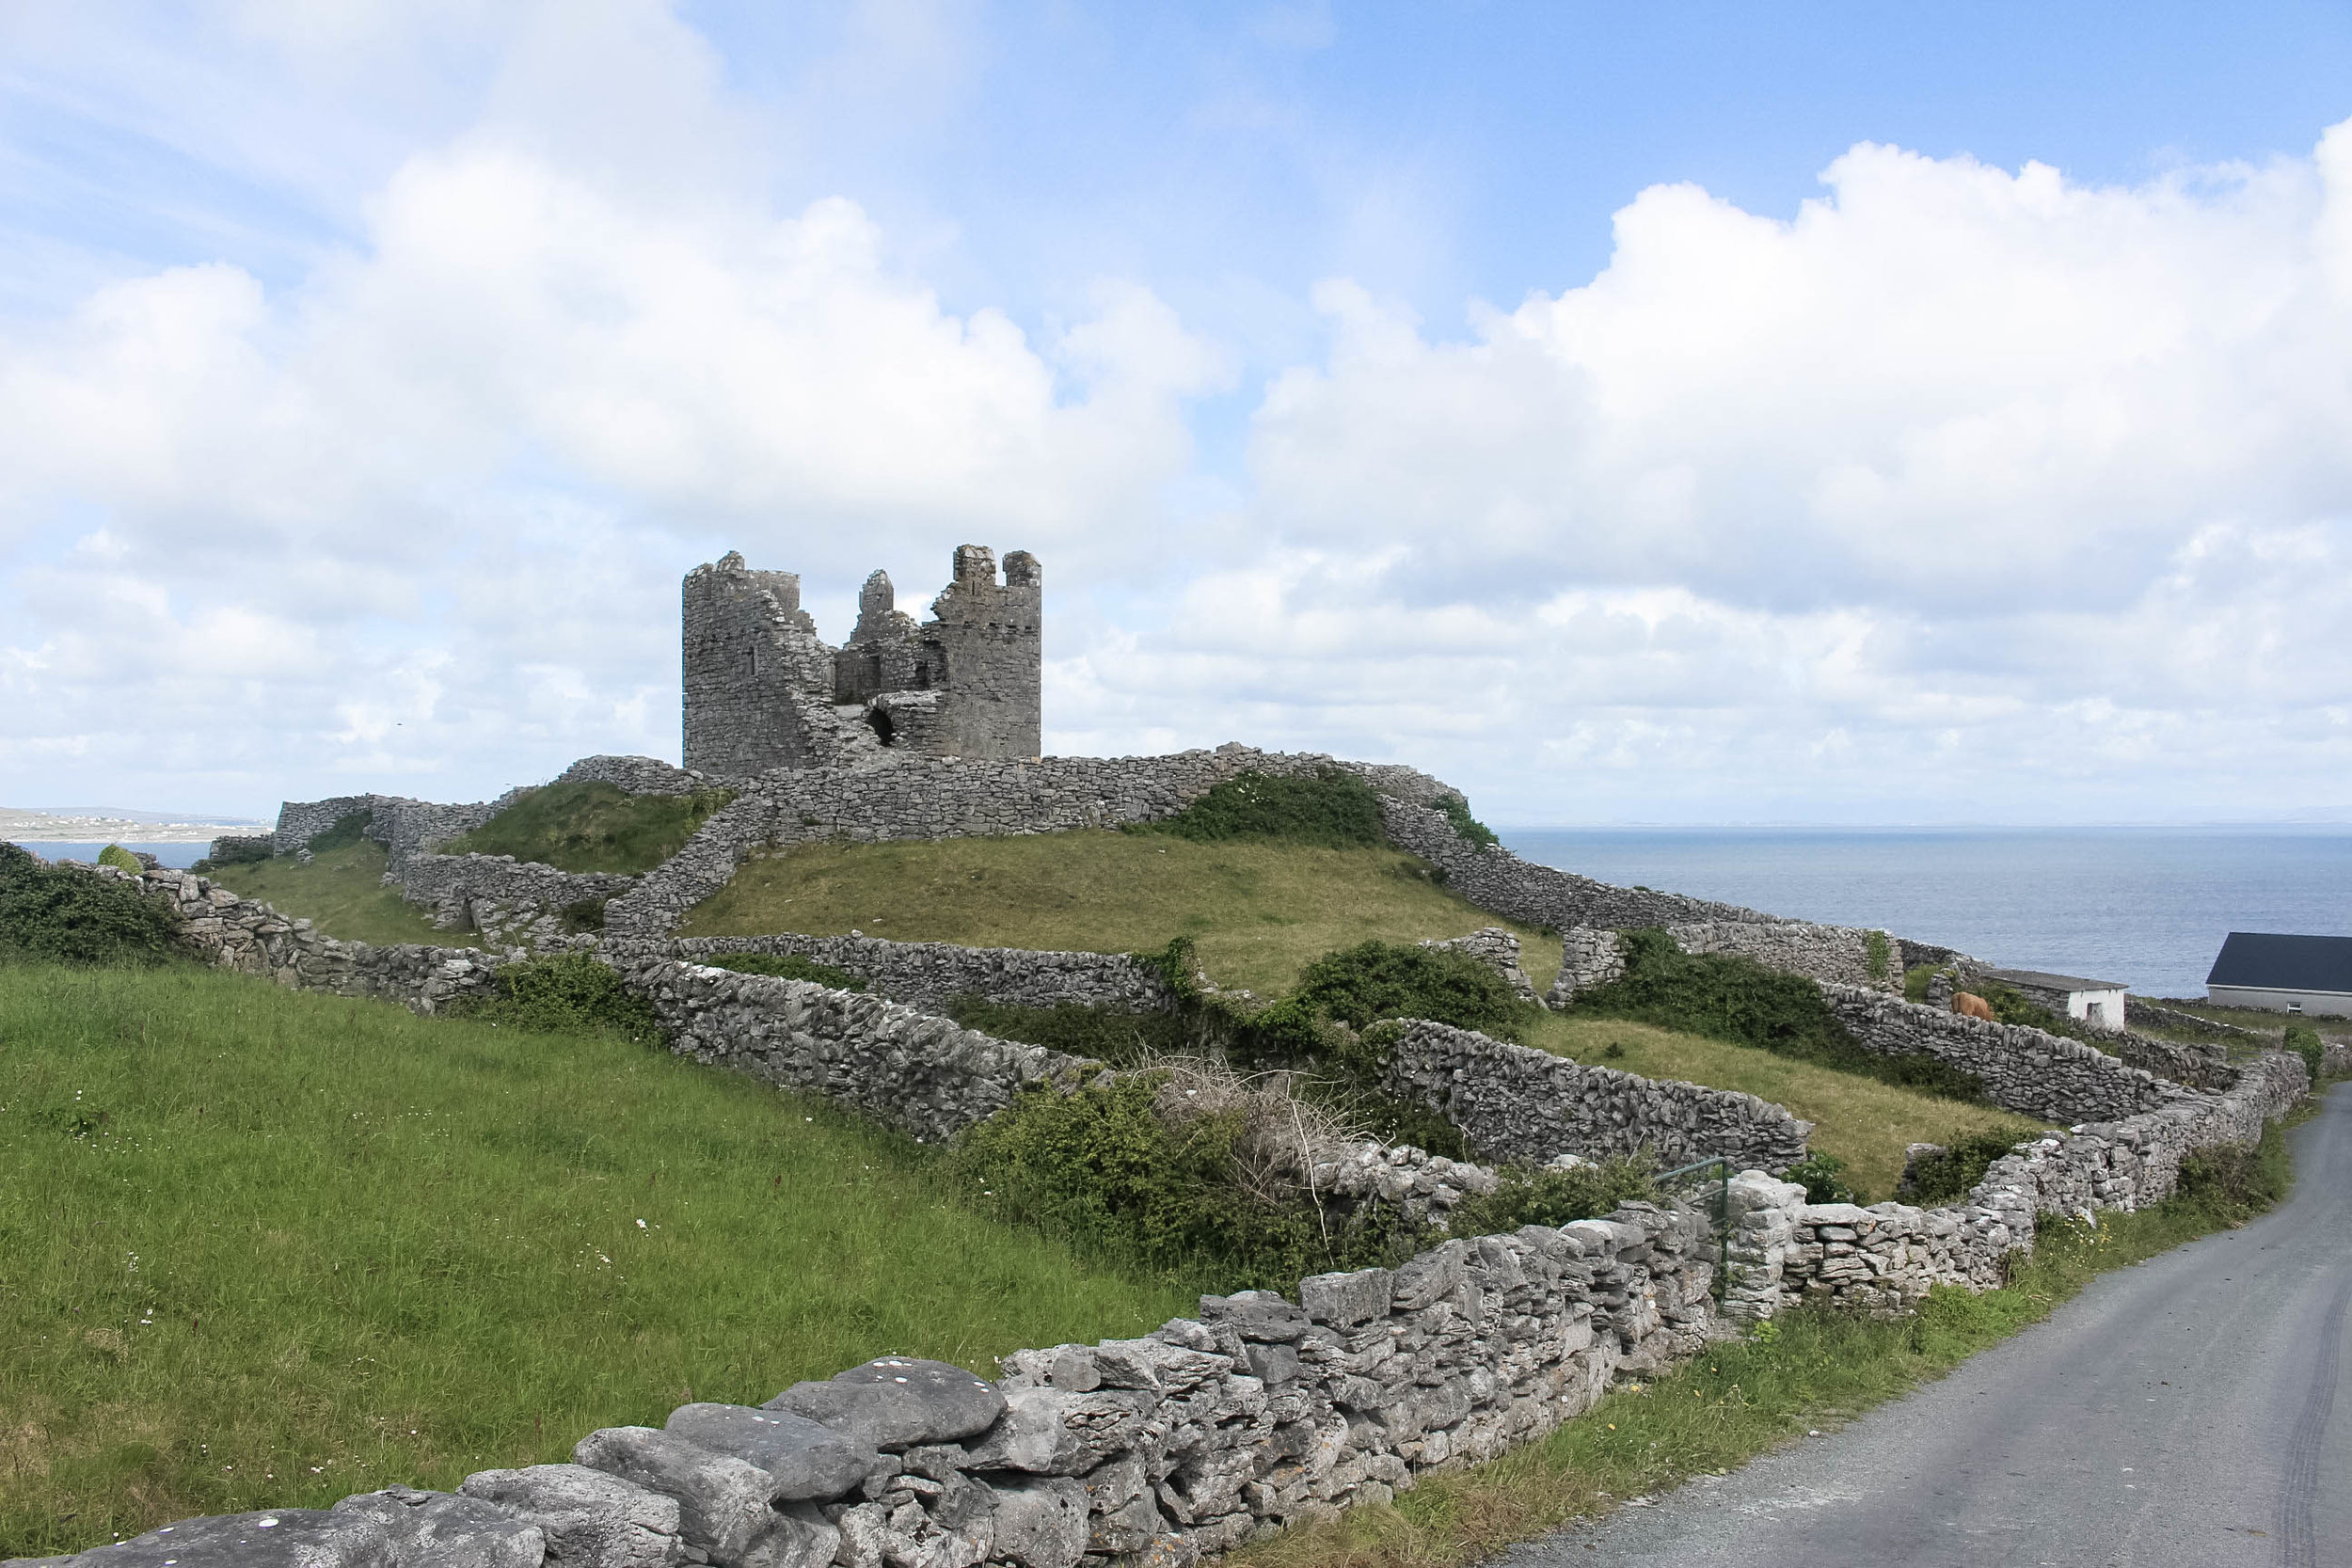 Castle on Inis Oirr, Aran Islands, Ireland - Things to do in Ireland